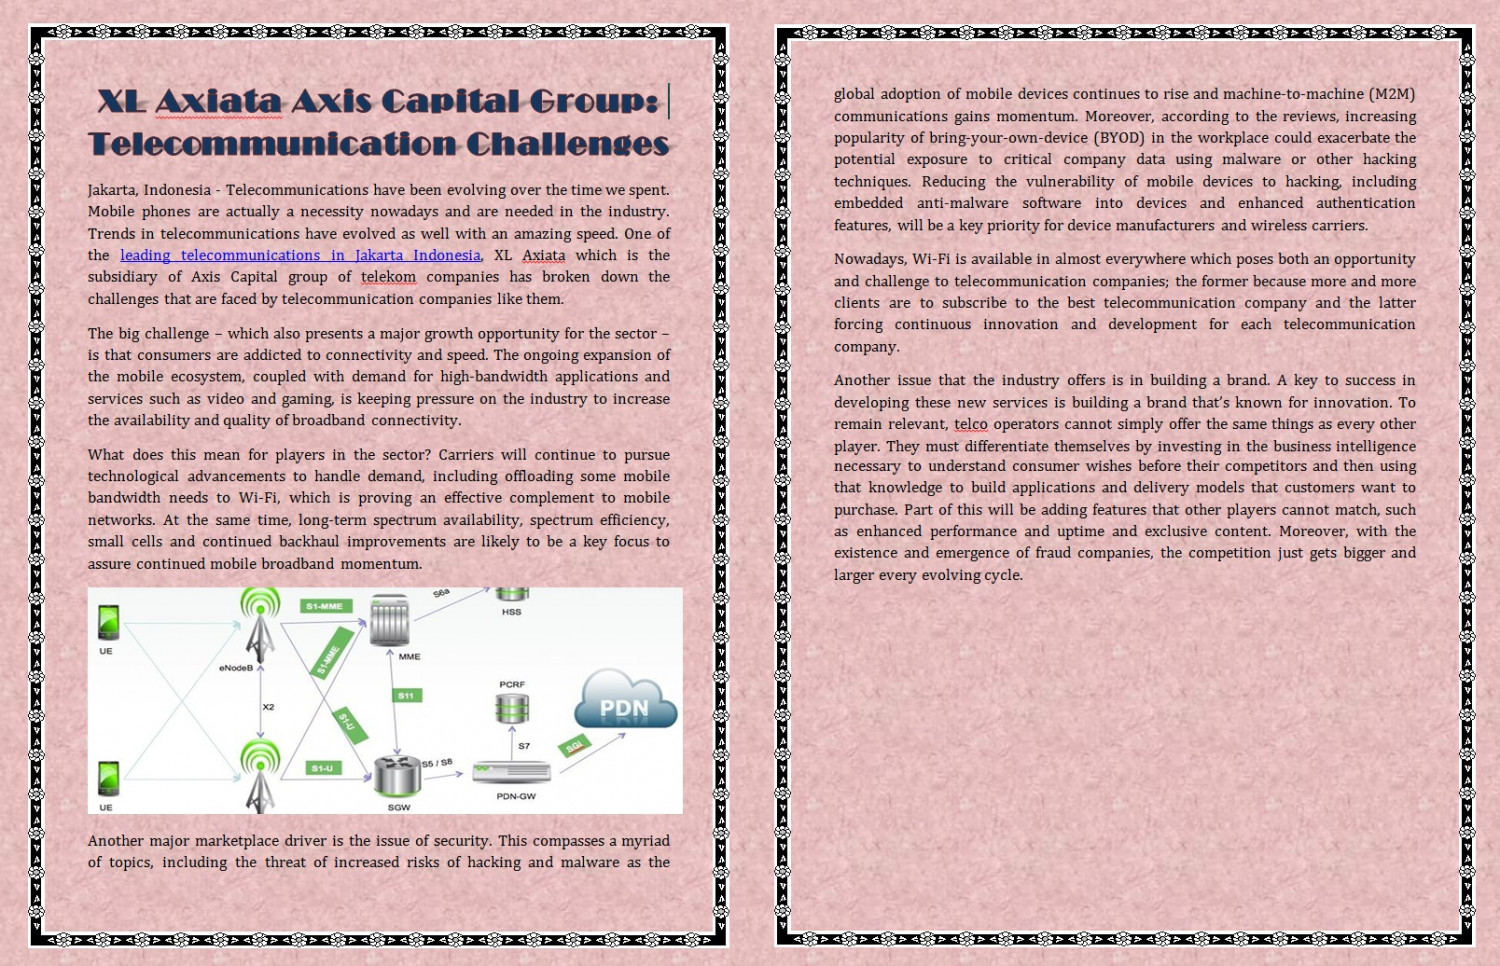 XL Axiata Axis Capital Group: Telecommunication Challenges Infographic